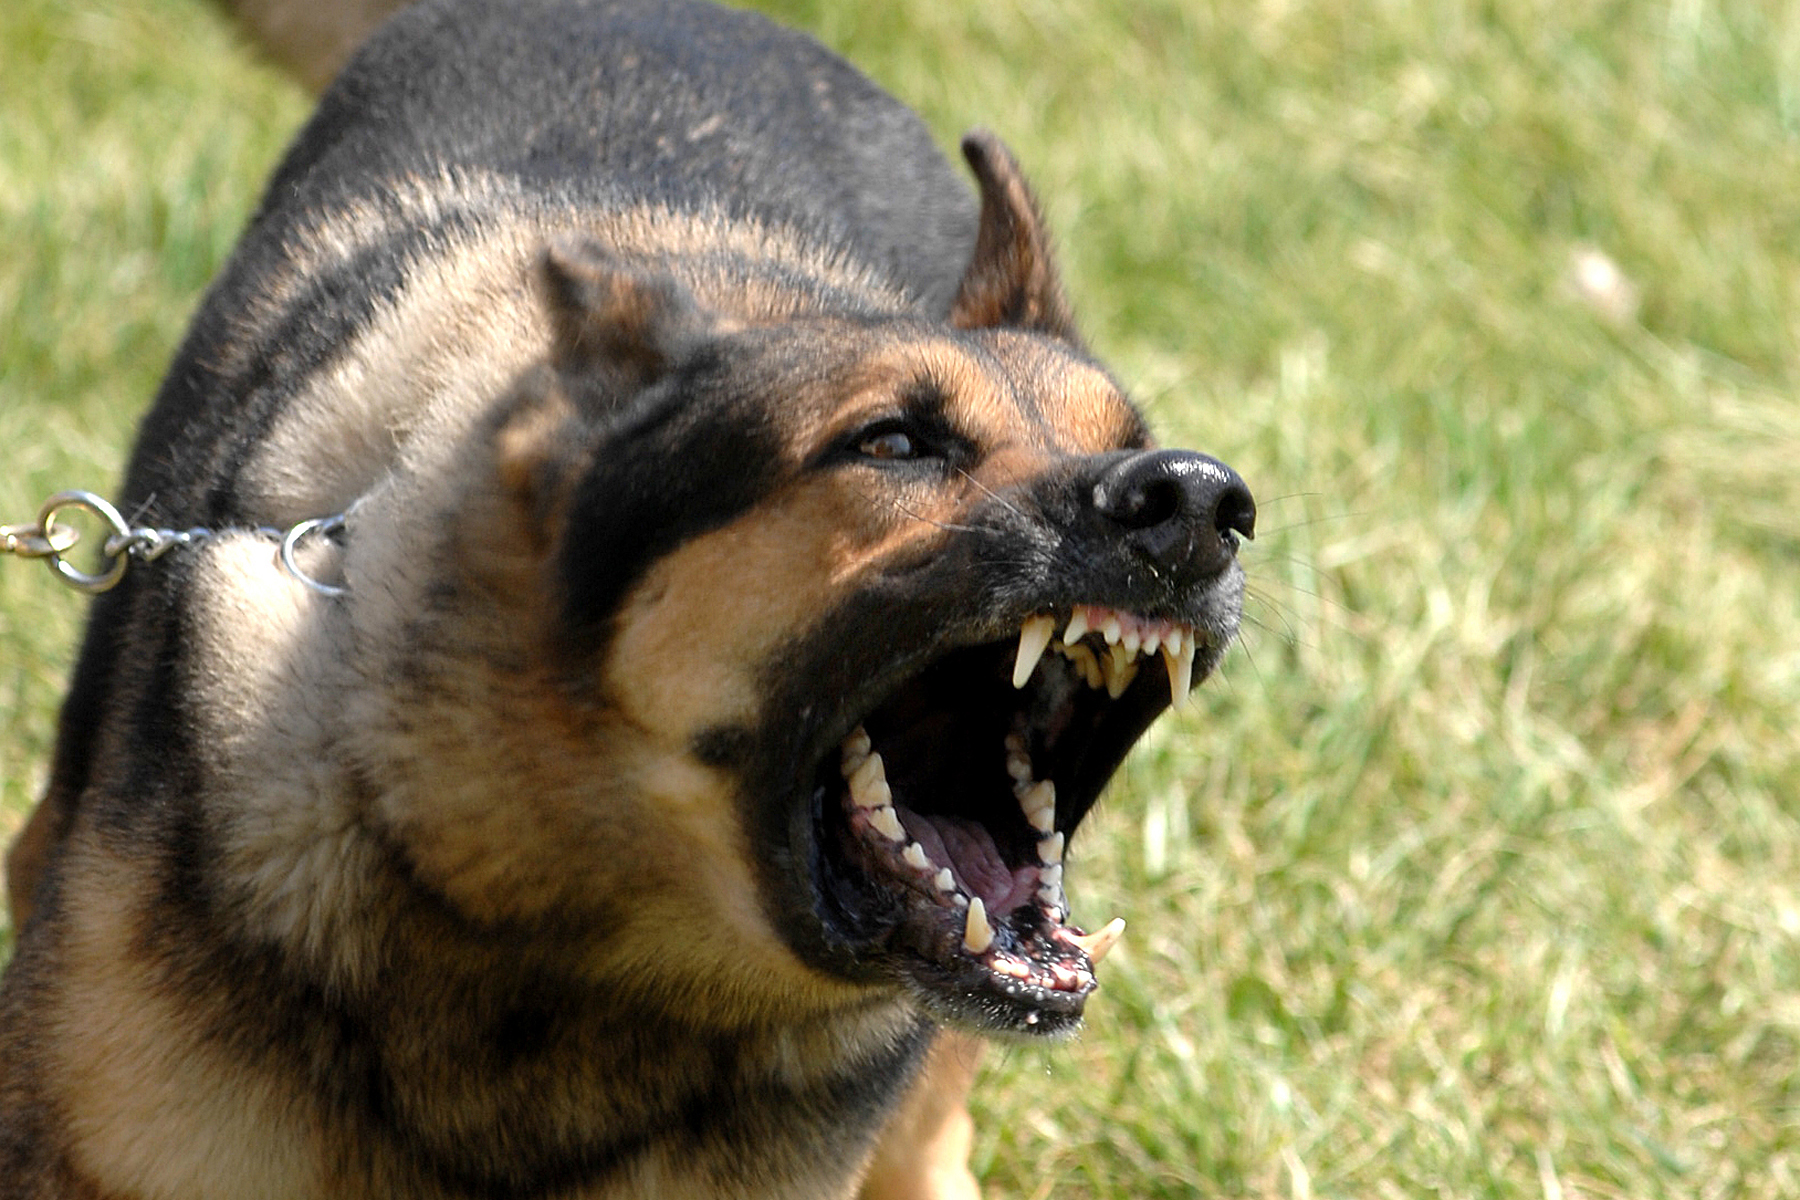 How much will a dog bite cost? About $37,200